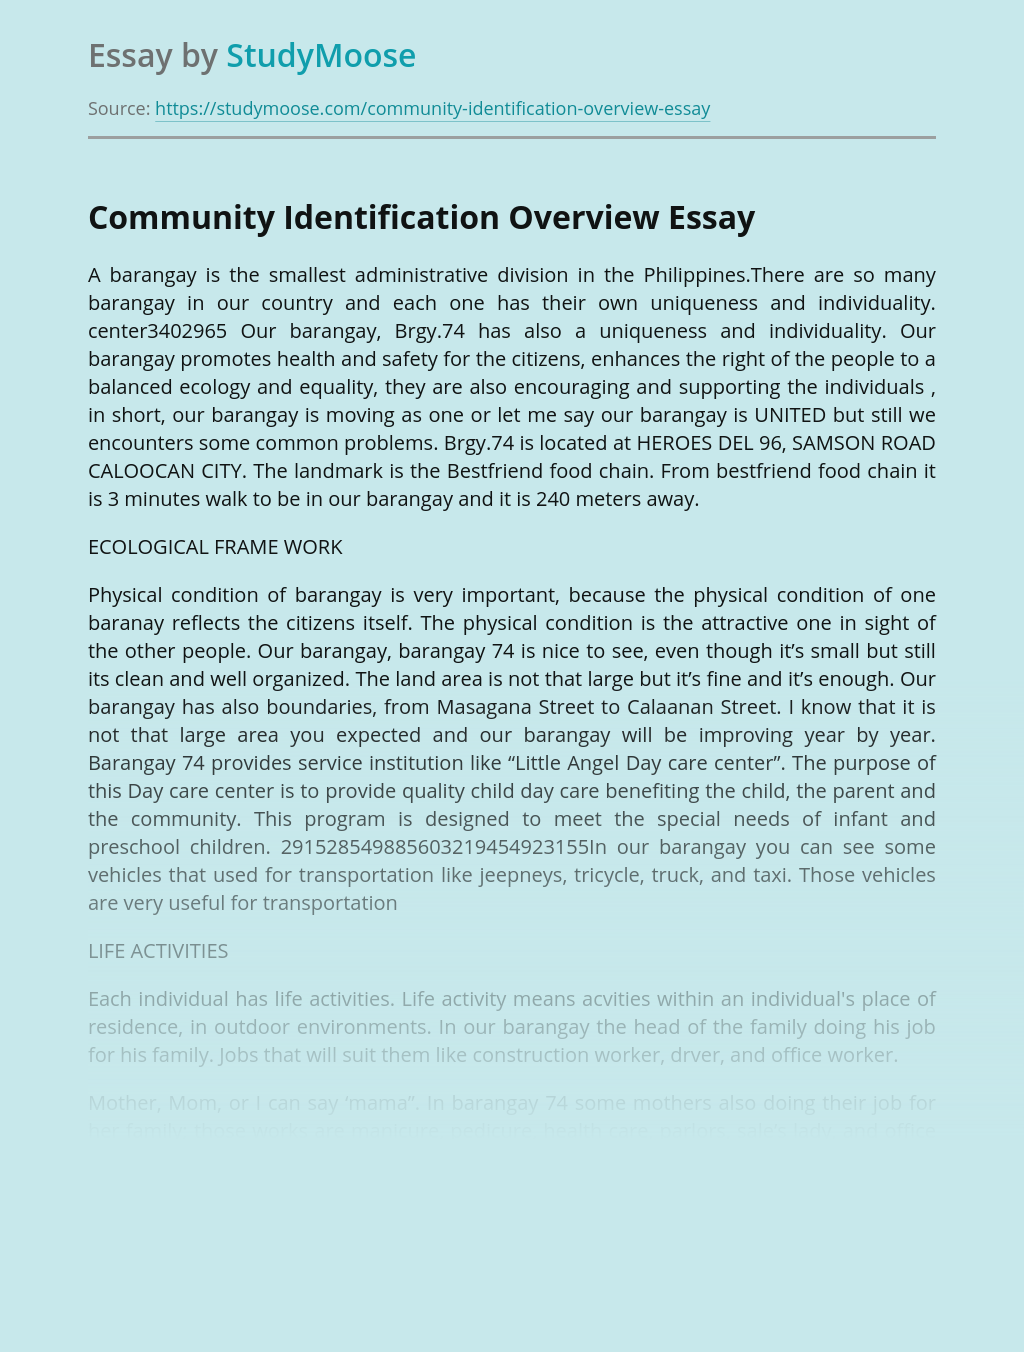 Community Identification Overview